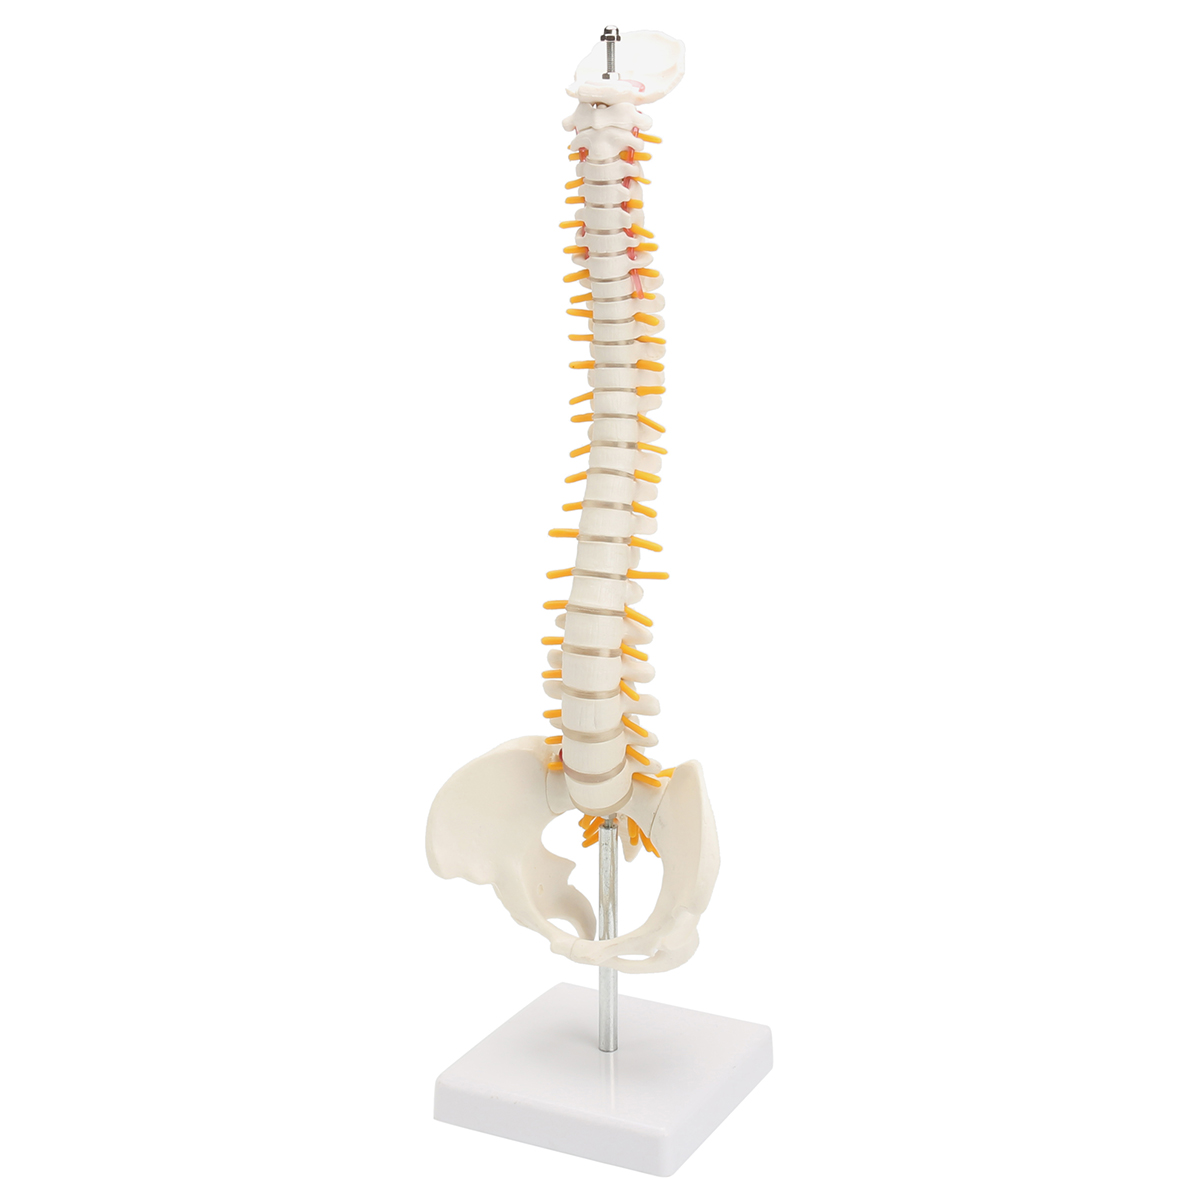 45cm PVC Spine Bone Model With Pelvis Femur Heads 1/2 Life Lab Equipment Teaching Resources Medical Science Educational Supplies45cm PVC Spine Bone Model With Pelvis Femur Heads 1/2 Life Lab Equipment Teaching Resources Medical Science Educational Supplies